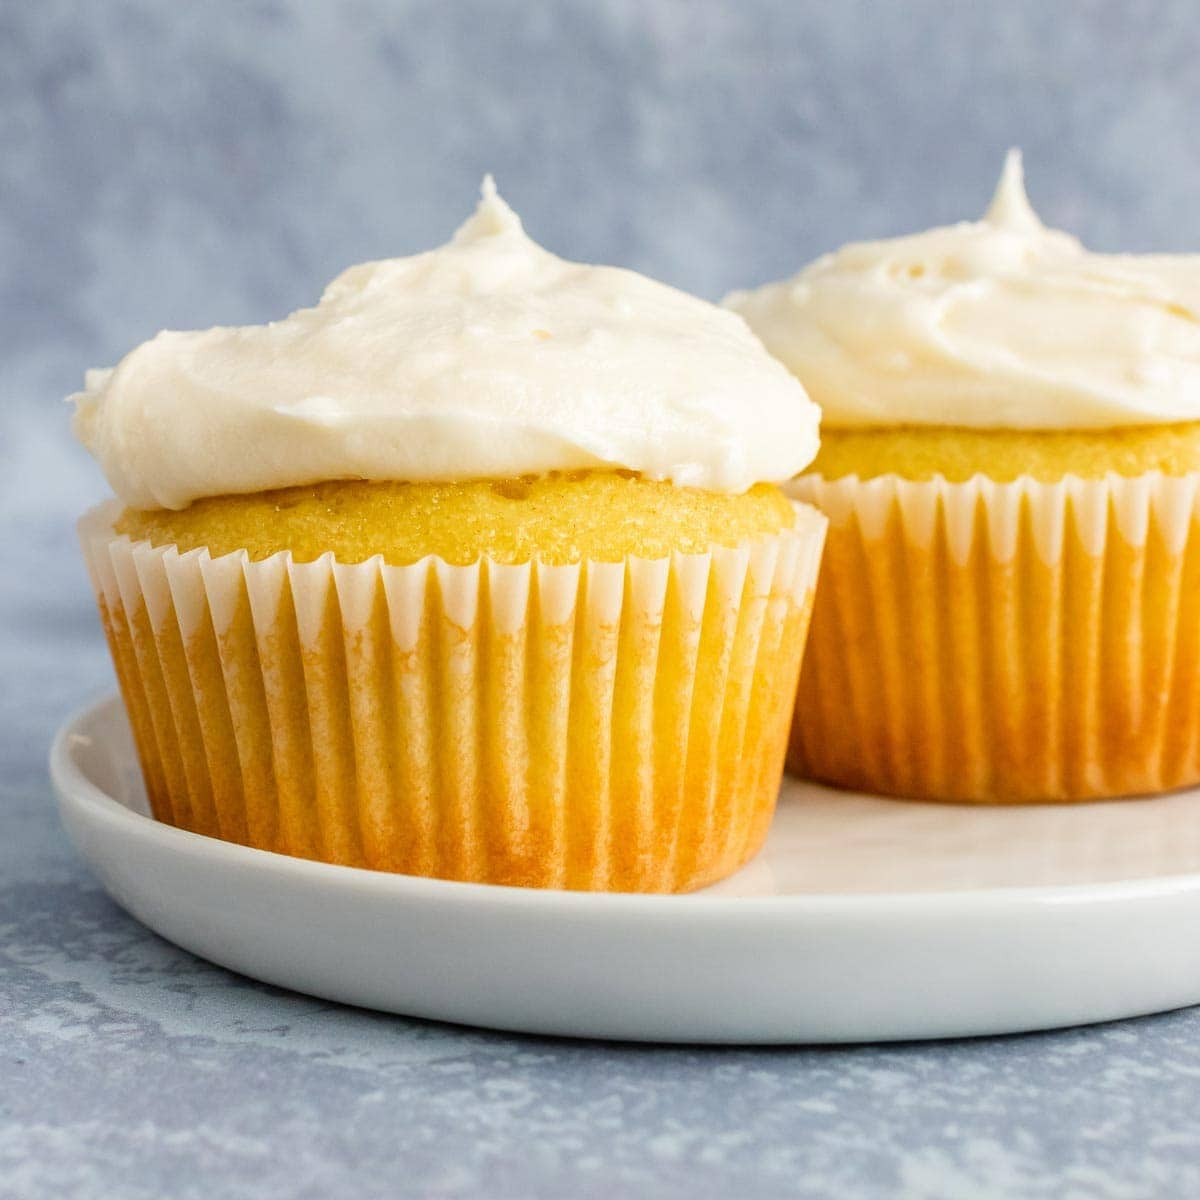 Two vanilla cupcakes topped with buttercream frosting.